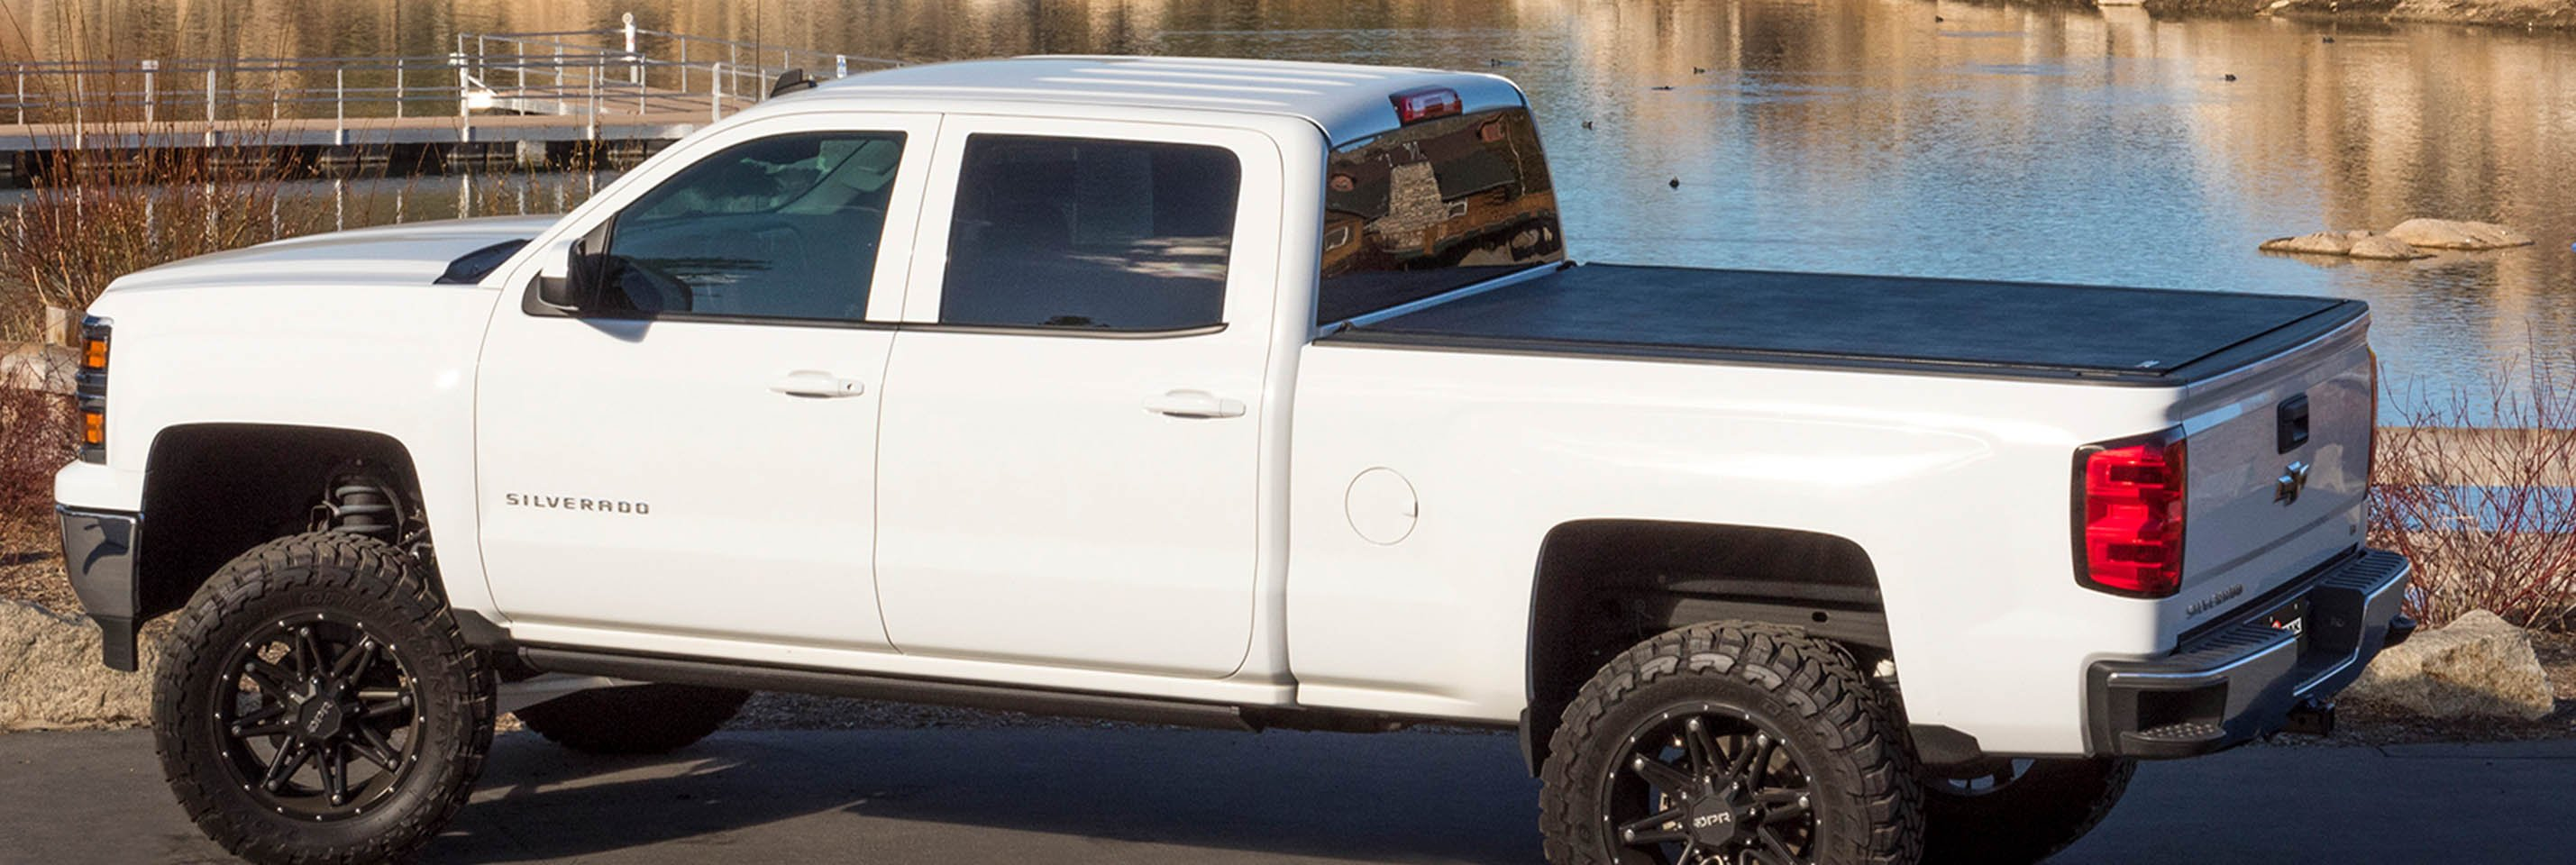 Best Tonneau Covers For Chevy Silverado Top Customer Picks